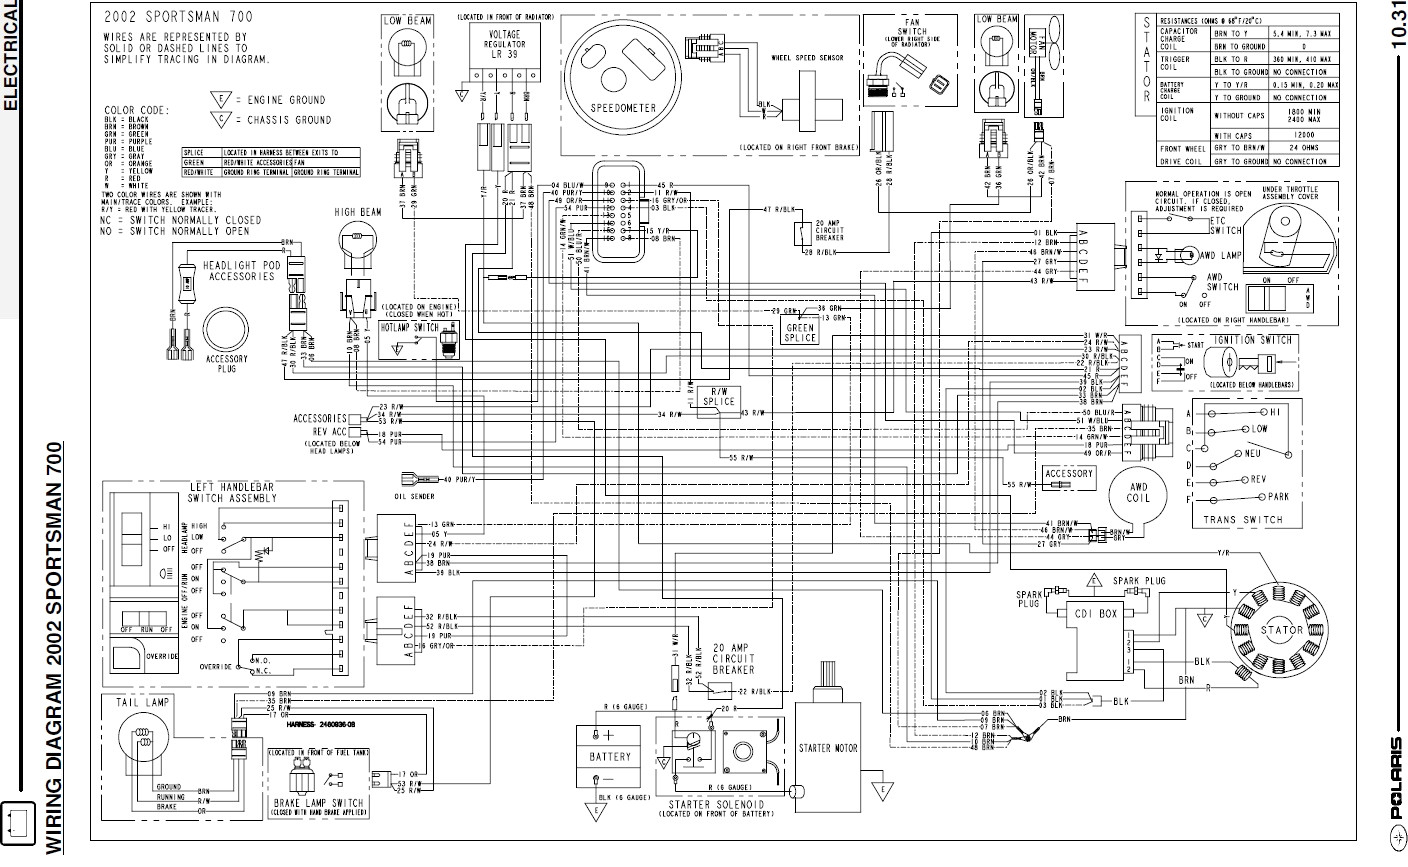 wiring schematic for a 2002 polaris 700